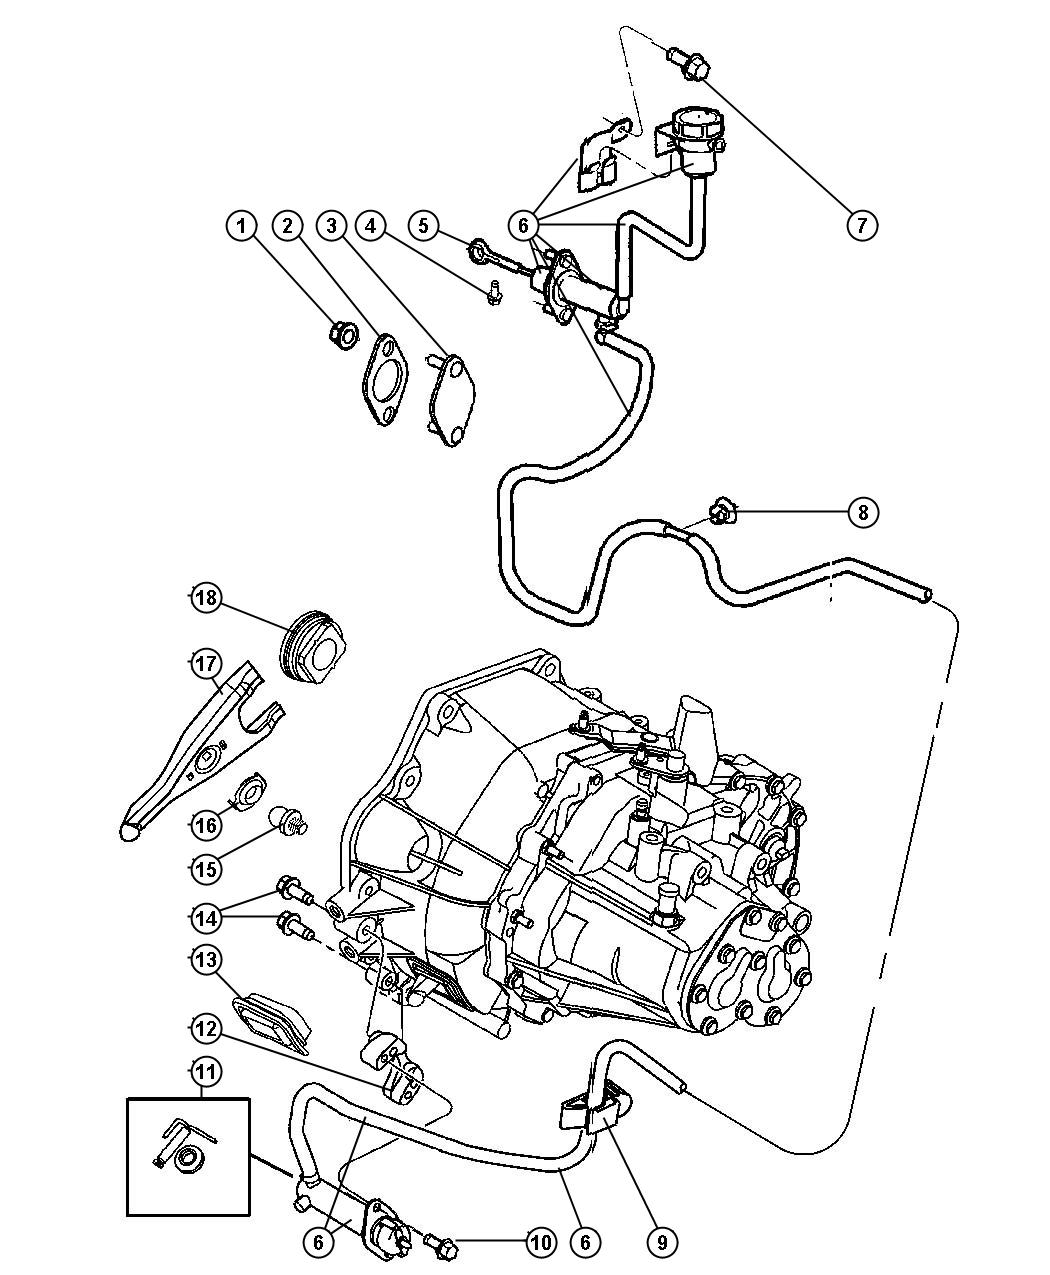 Chrysler Voyager Oem Parts Diagram. Chrysler. Auto Wiring